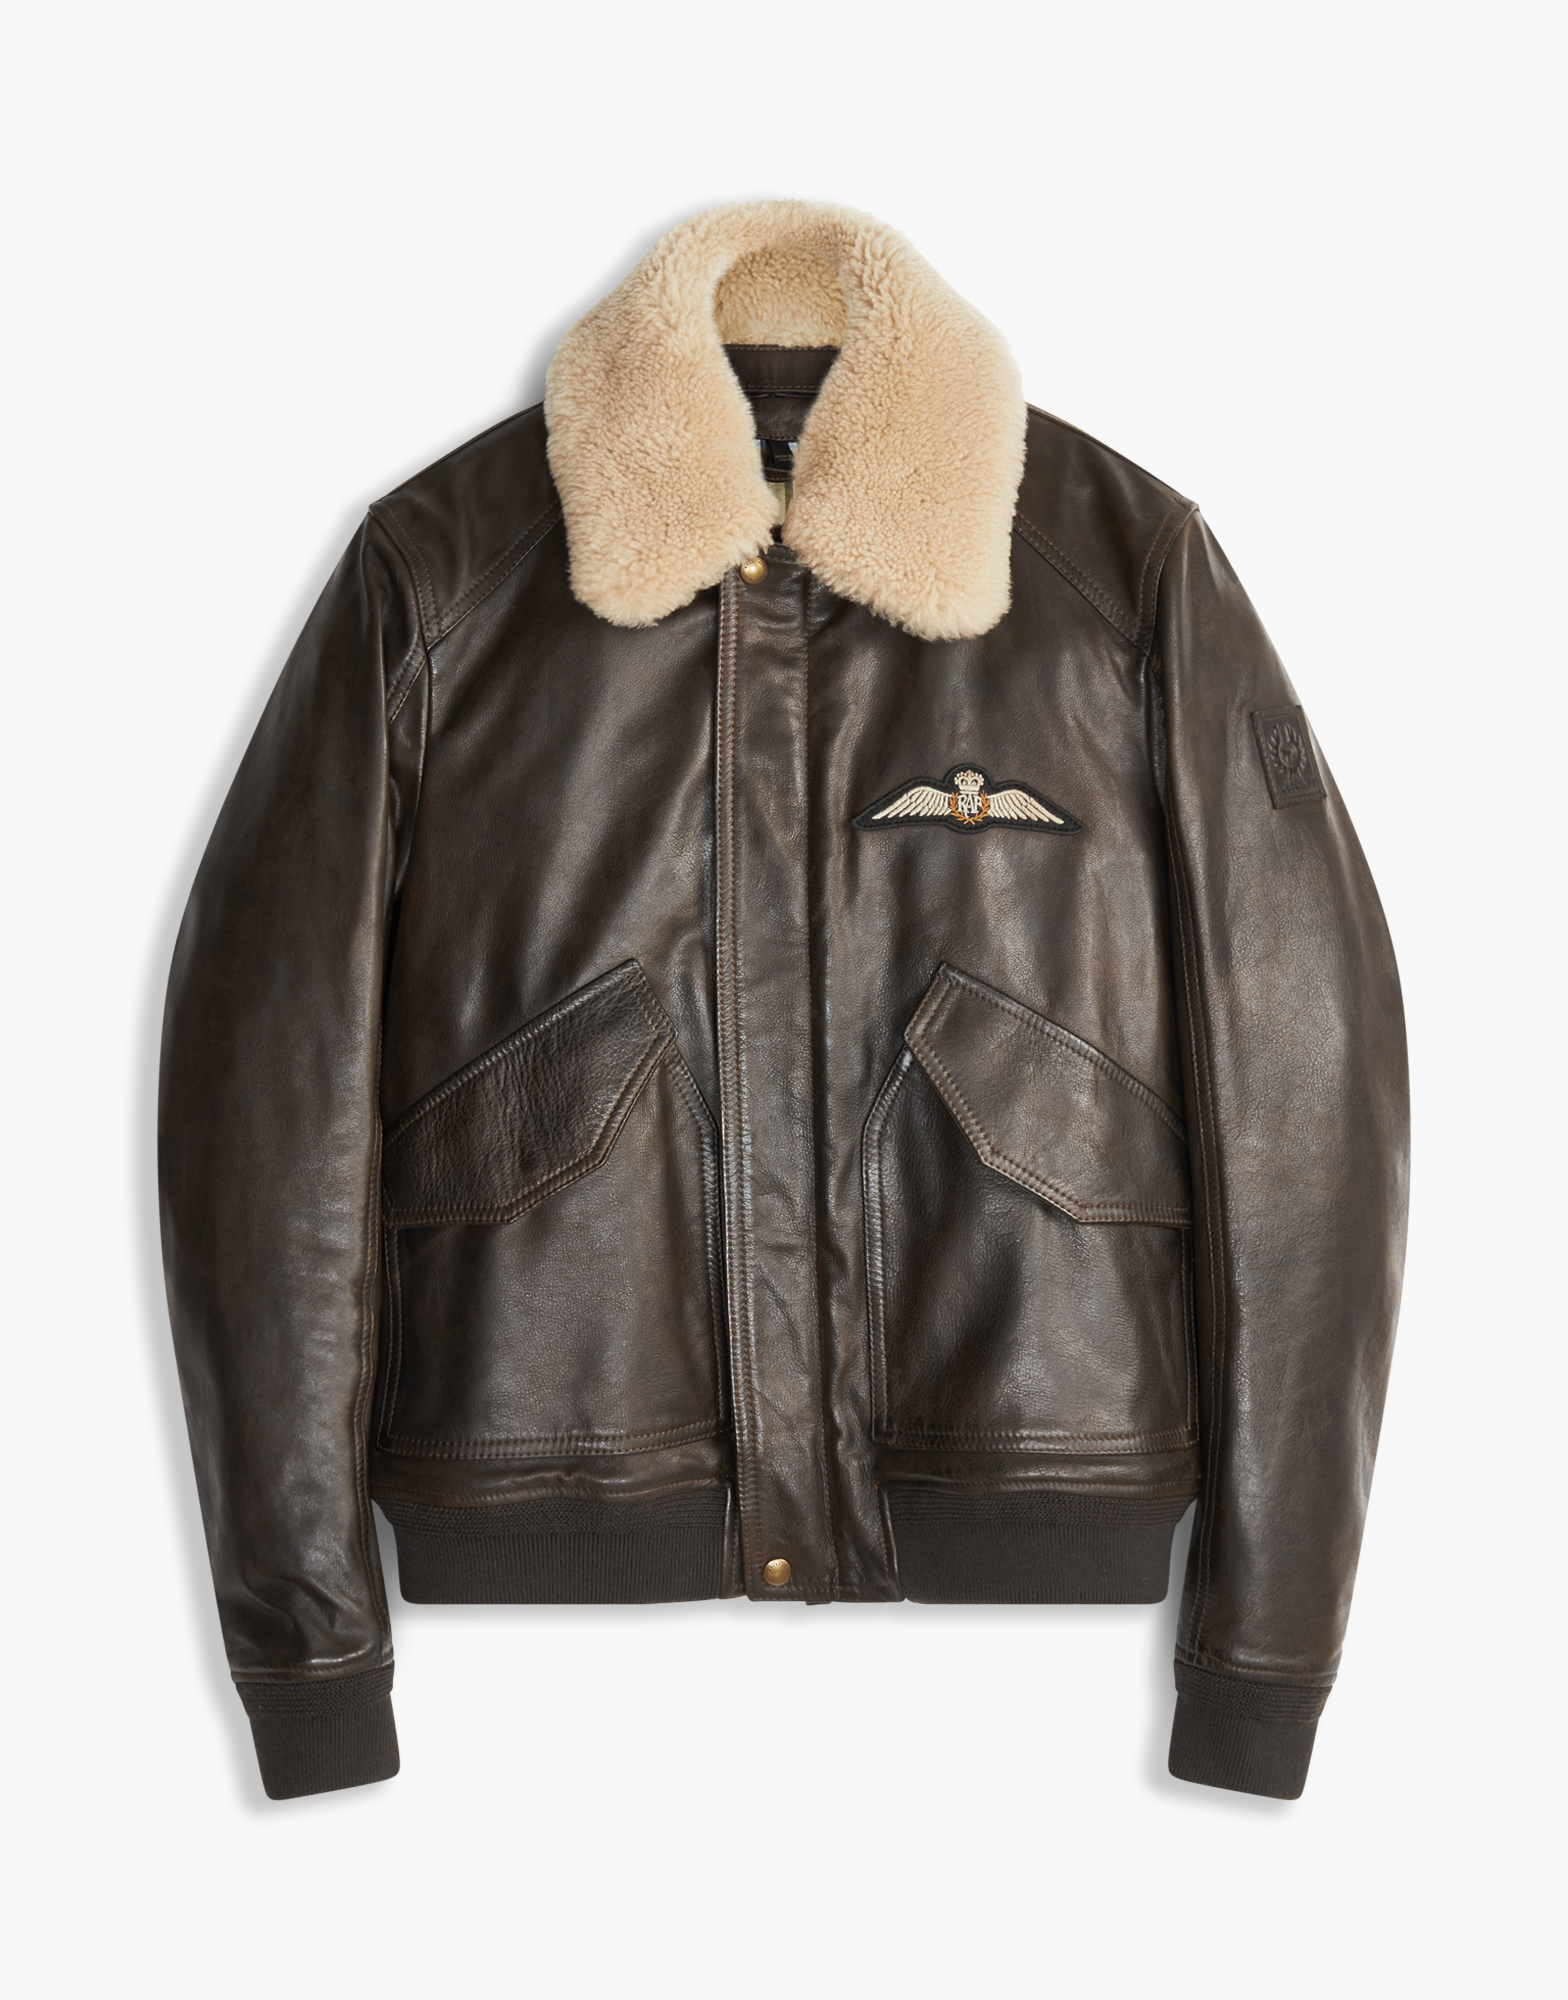 Belstaff limited-edition jacket